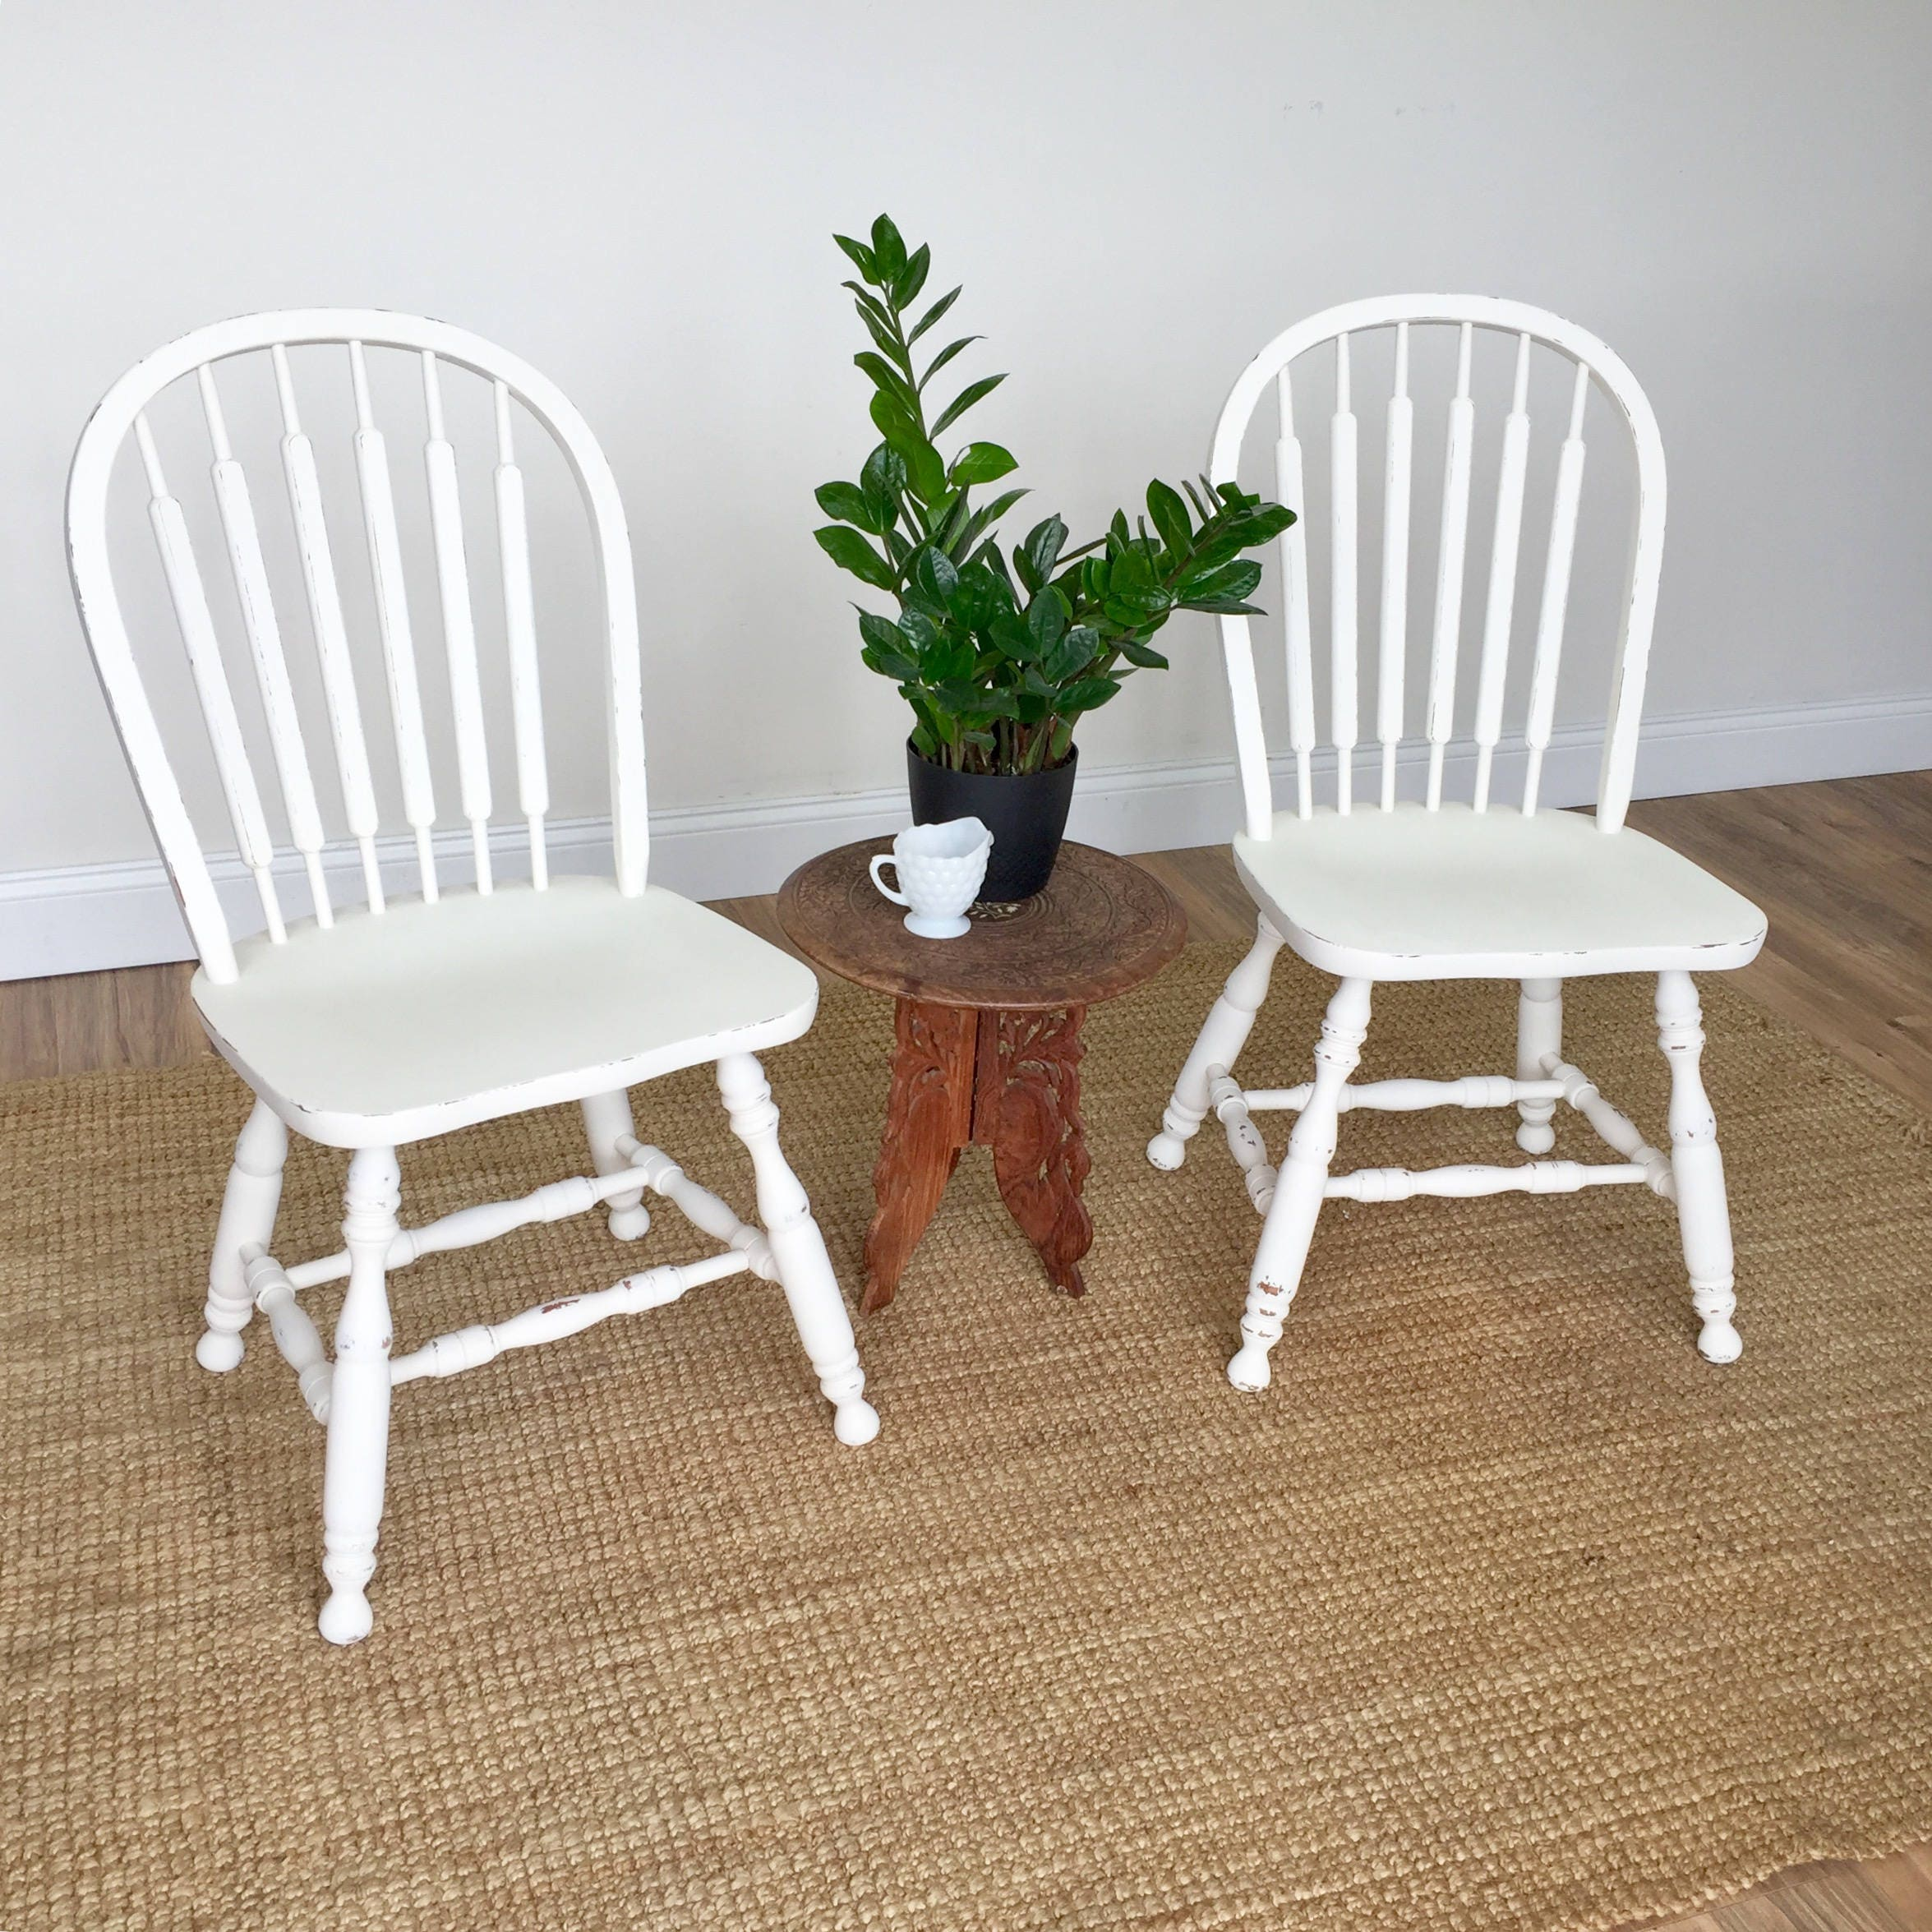 White Kitchen Chairs white kitchen chairs - farmhouse dining chairs - country cottage